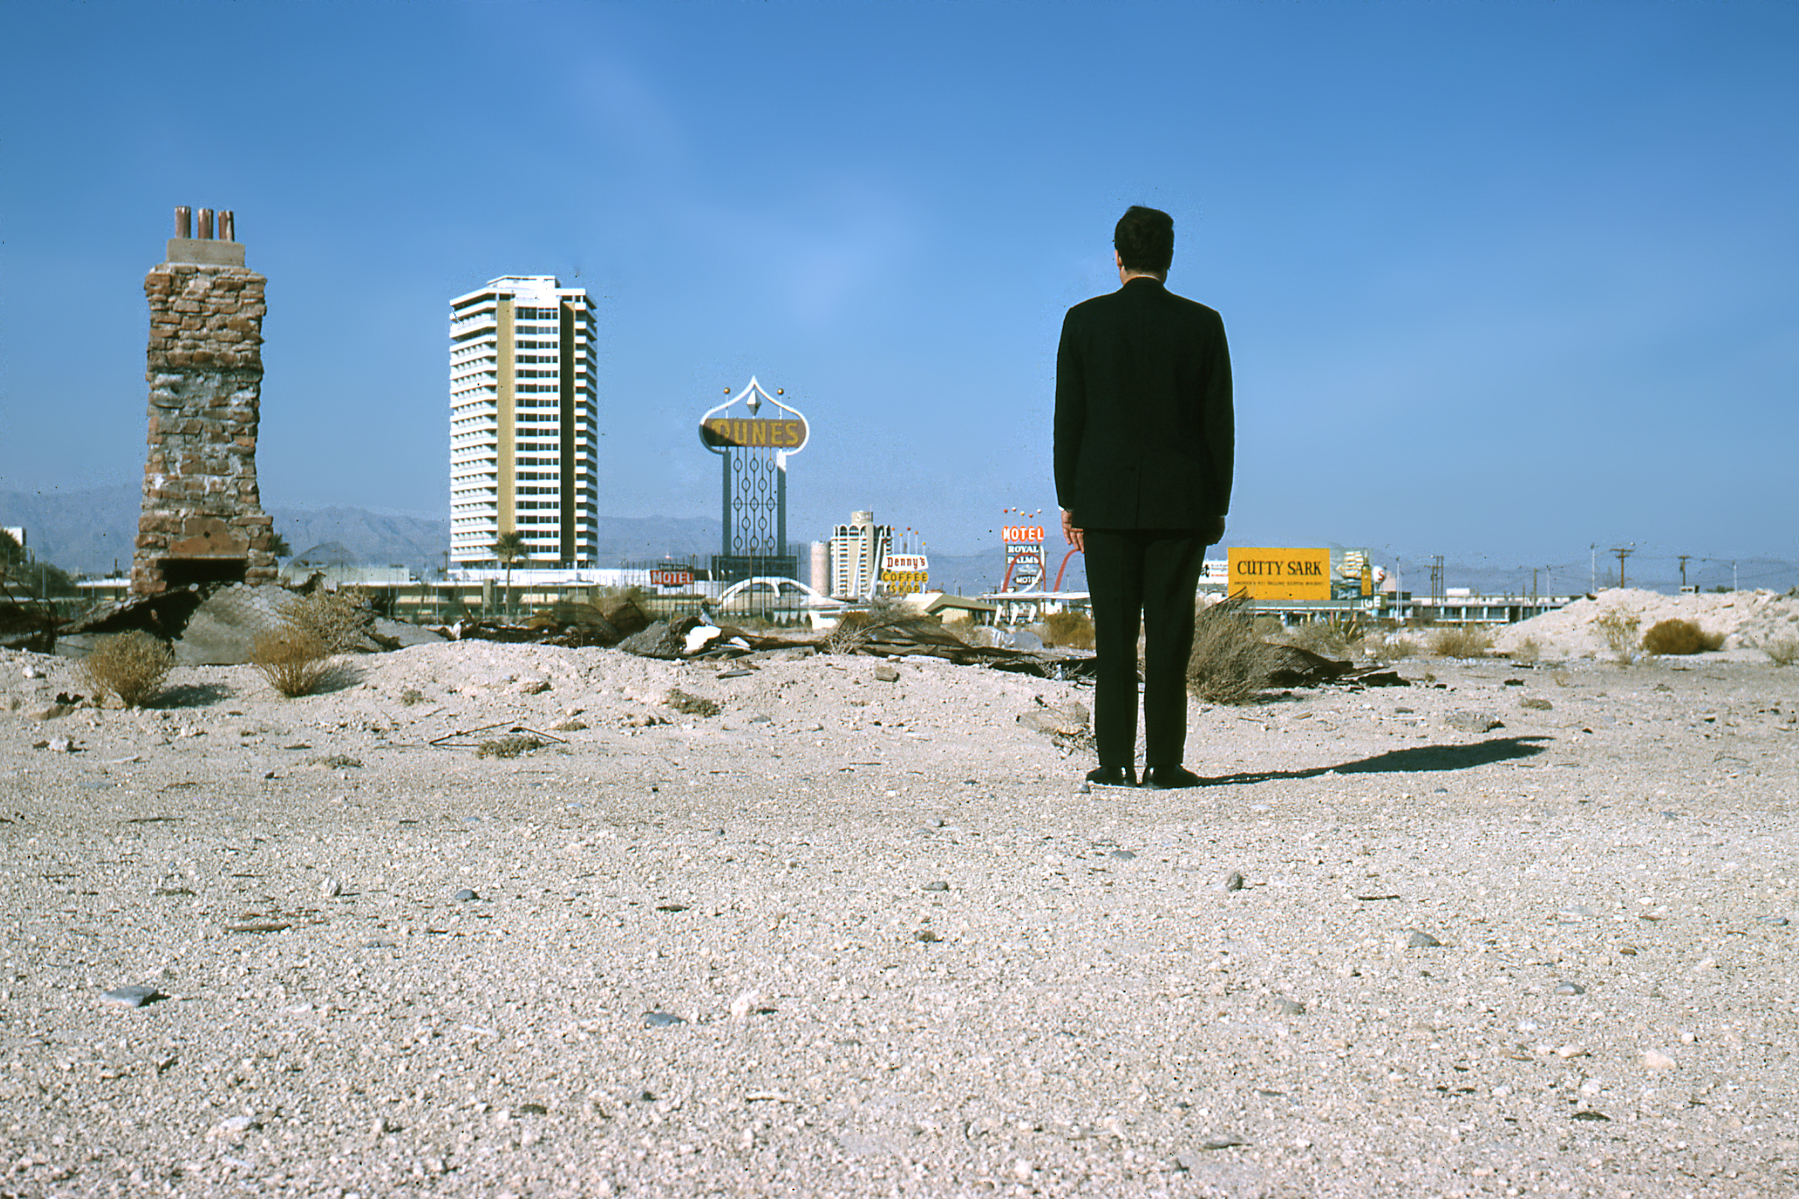 Robert Venturi, Las Vegas, 1966, Photo by Denise Scott Brown, Venturi, Scott Brown and Associates, Inc.